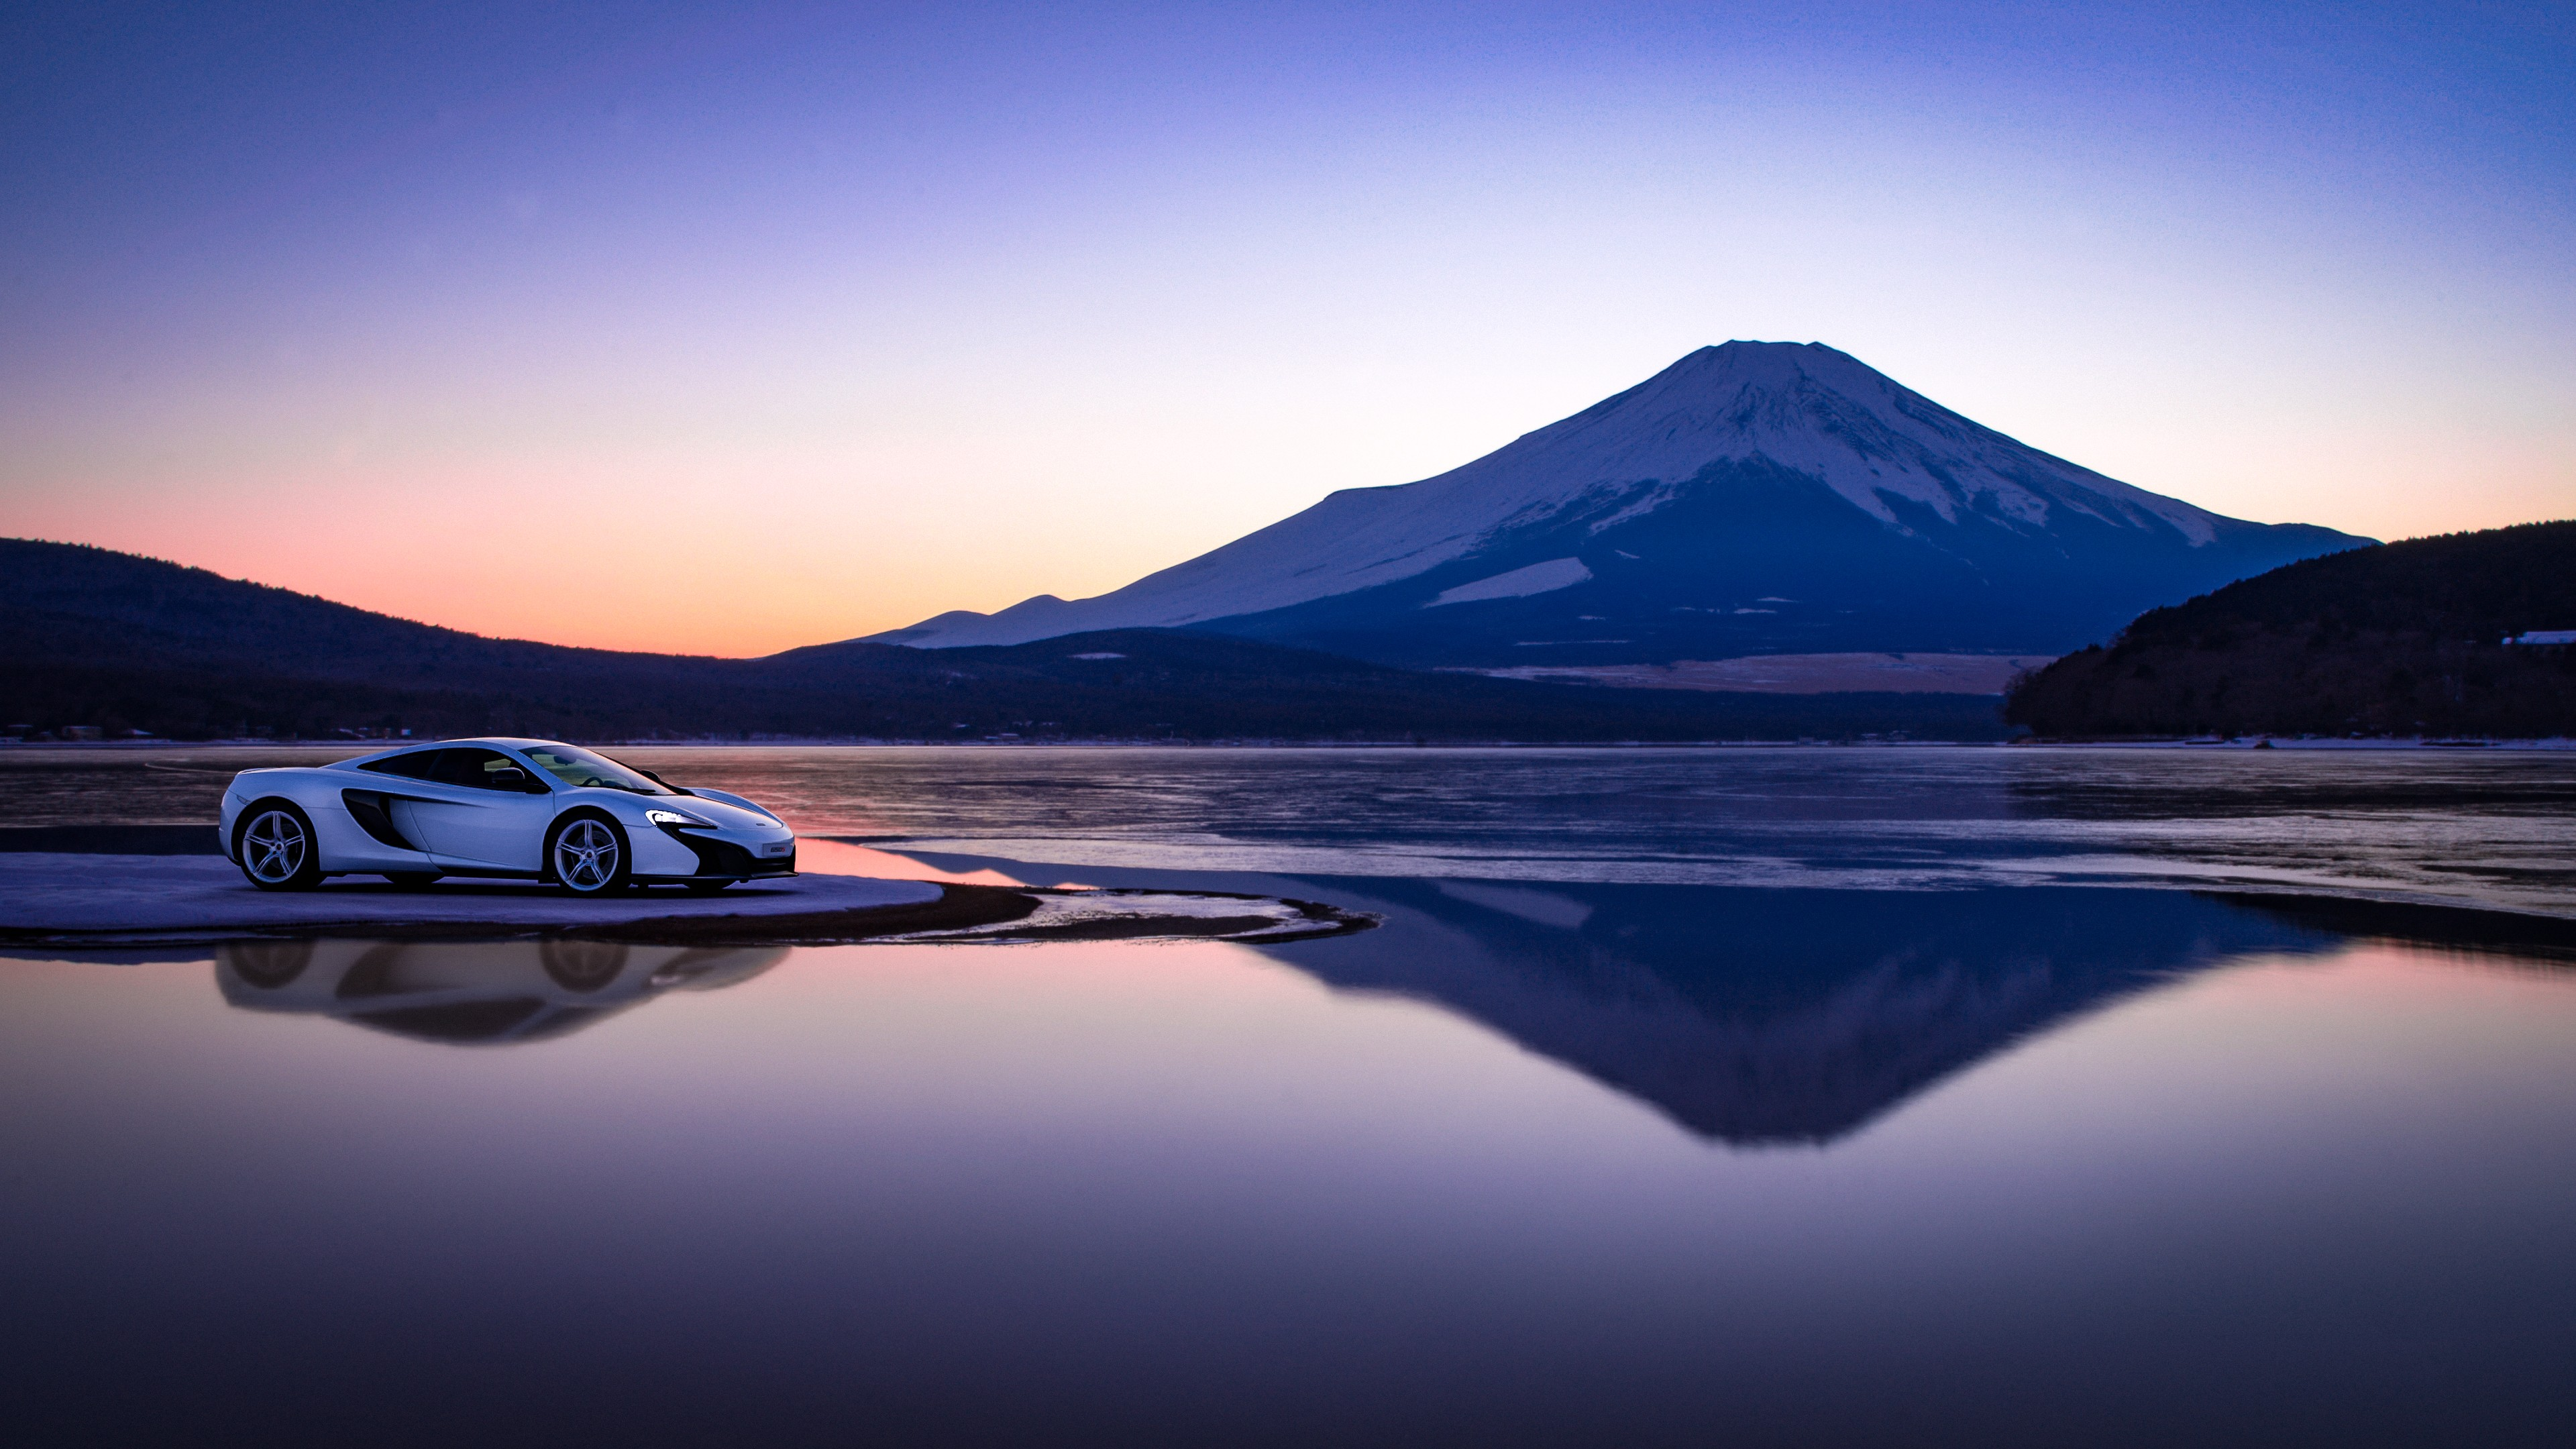 Hd 3d Nature Wallpapers 1080p Widescreen Mclaren At Mount Fuji Wallpapers Hd Wallpapers Id 27290